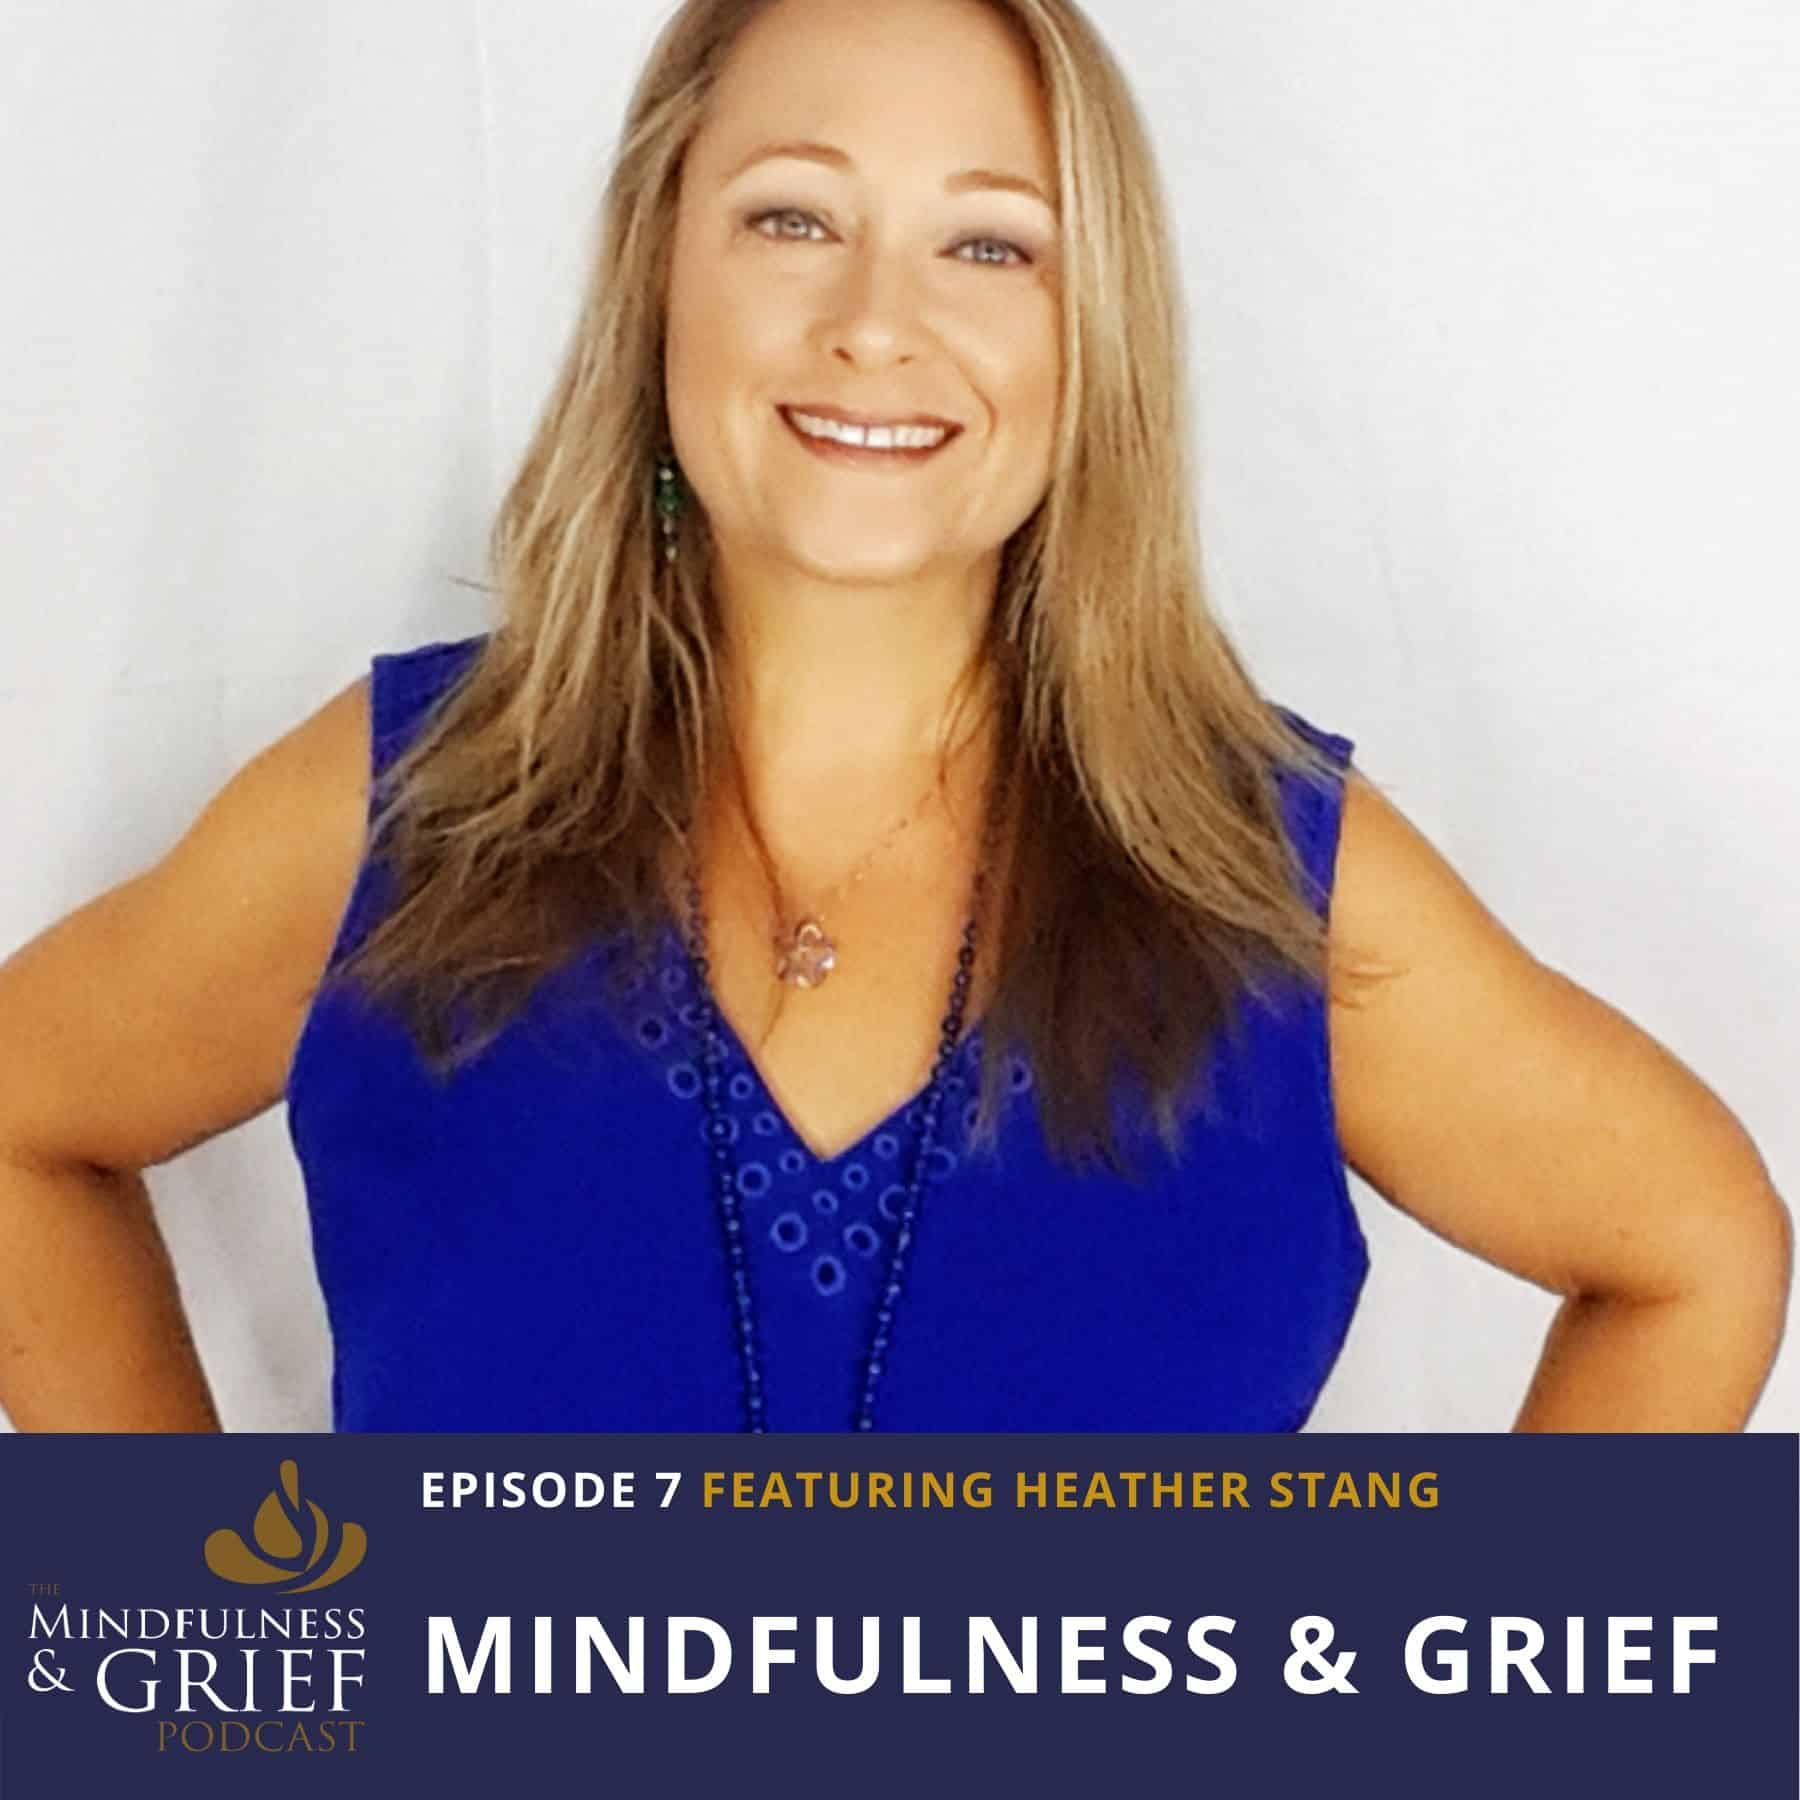 Mindfulness & Grief_ From Self-Care to Posttraumatic Growth with Heather Stang (1)